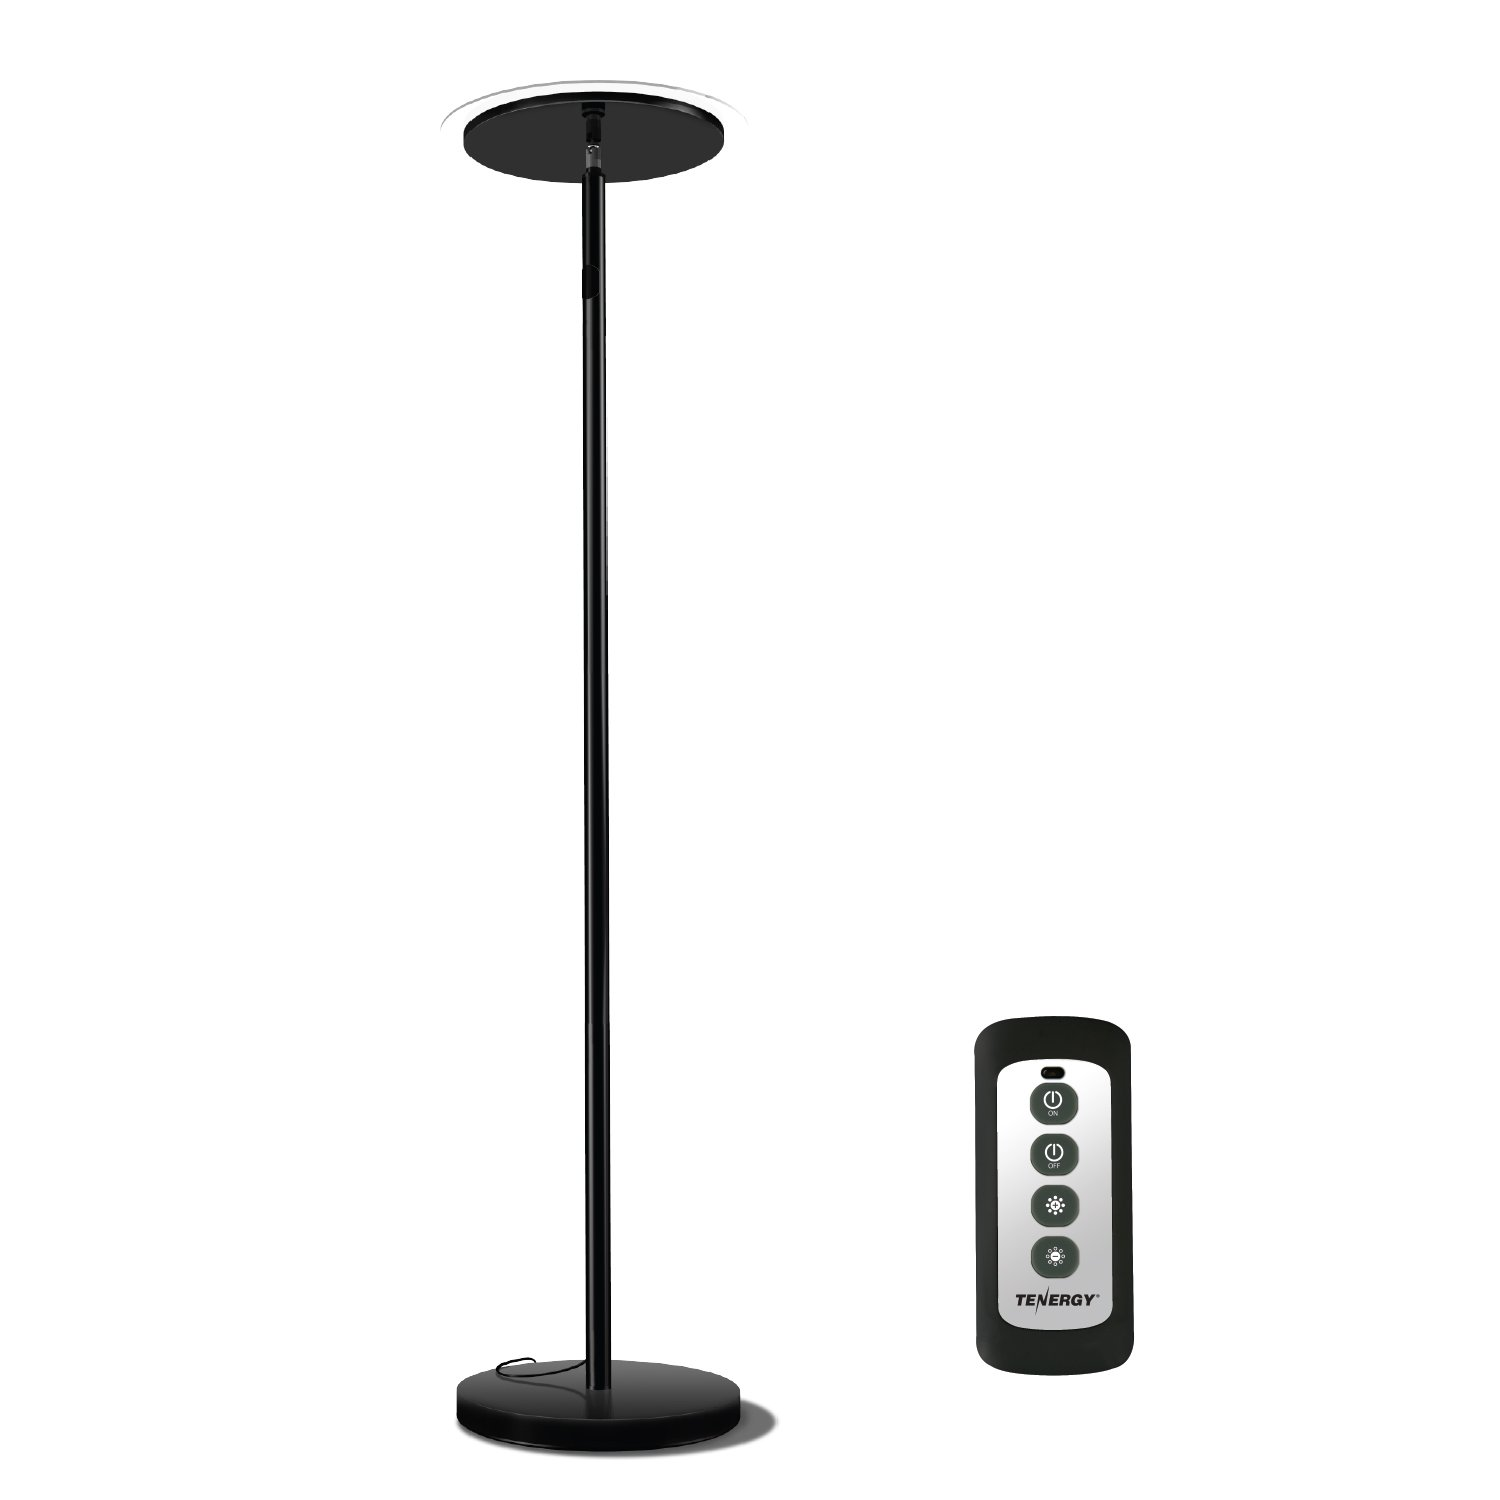 Tenergy Torchiere Dimmable LED Floor Lamp, Remote Controlled 30W (150W Equivalent) Standing Lamp with Stepless Touch Dimmer, 90° Adjustable Top, Wall Switch Smart Outlet Compatible, Warm White Light